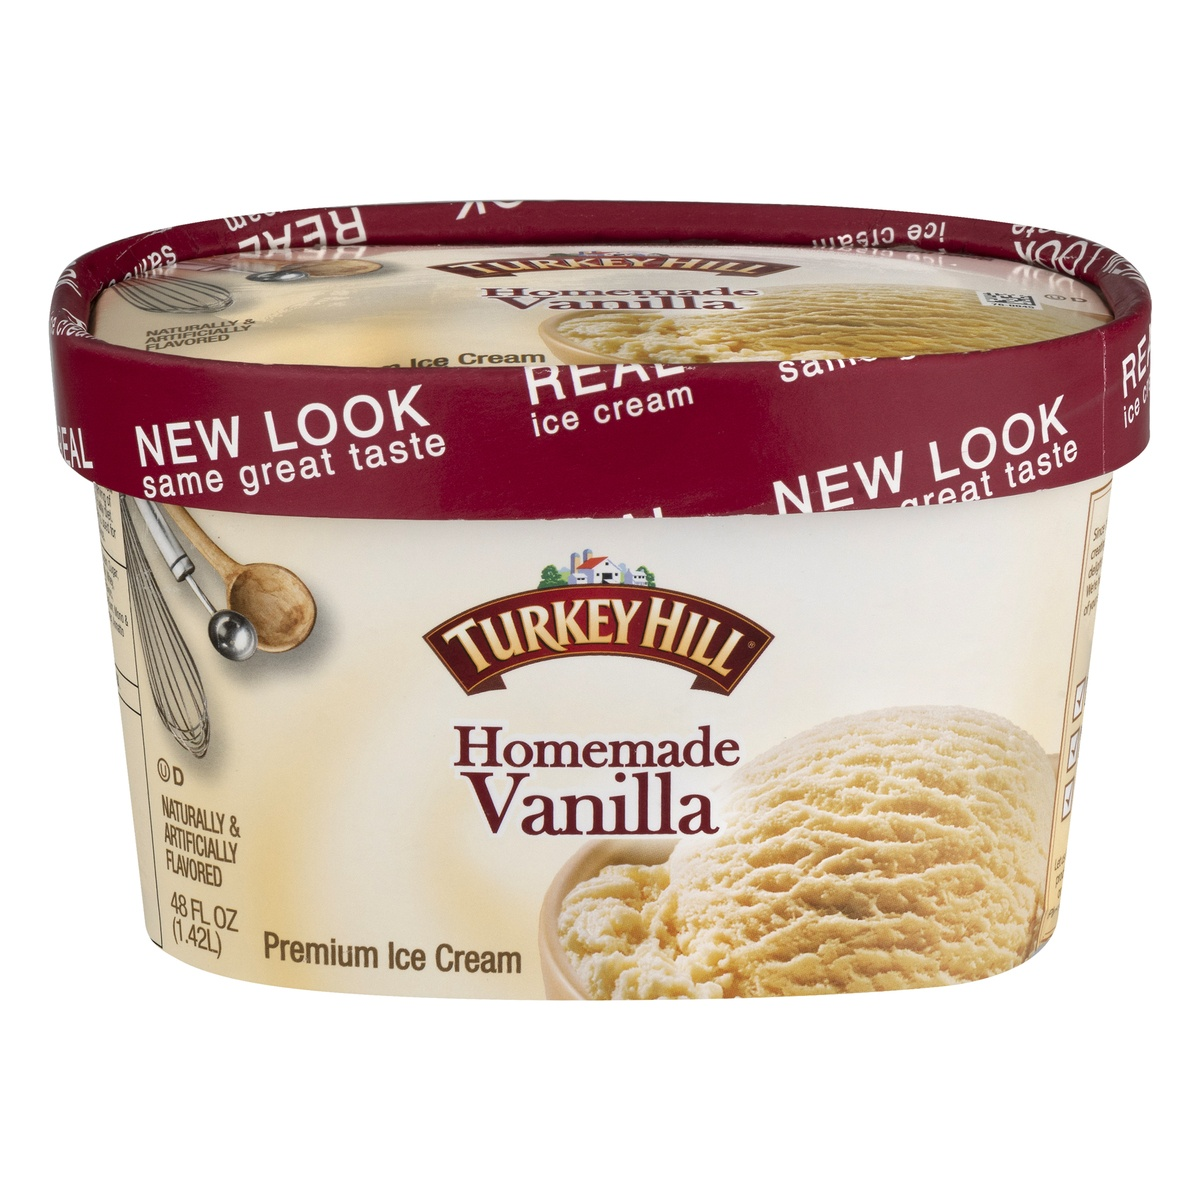 slide 1 of 10, Turkey Hill Ice Cream,